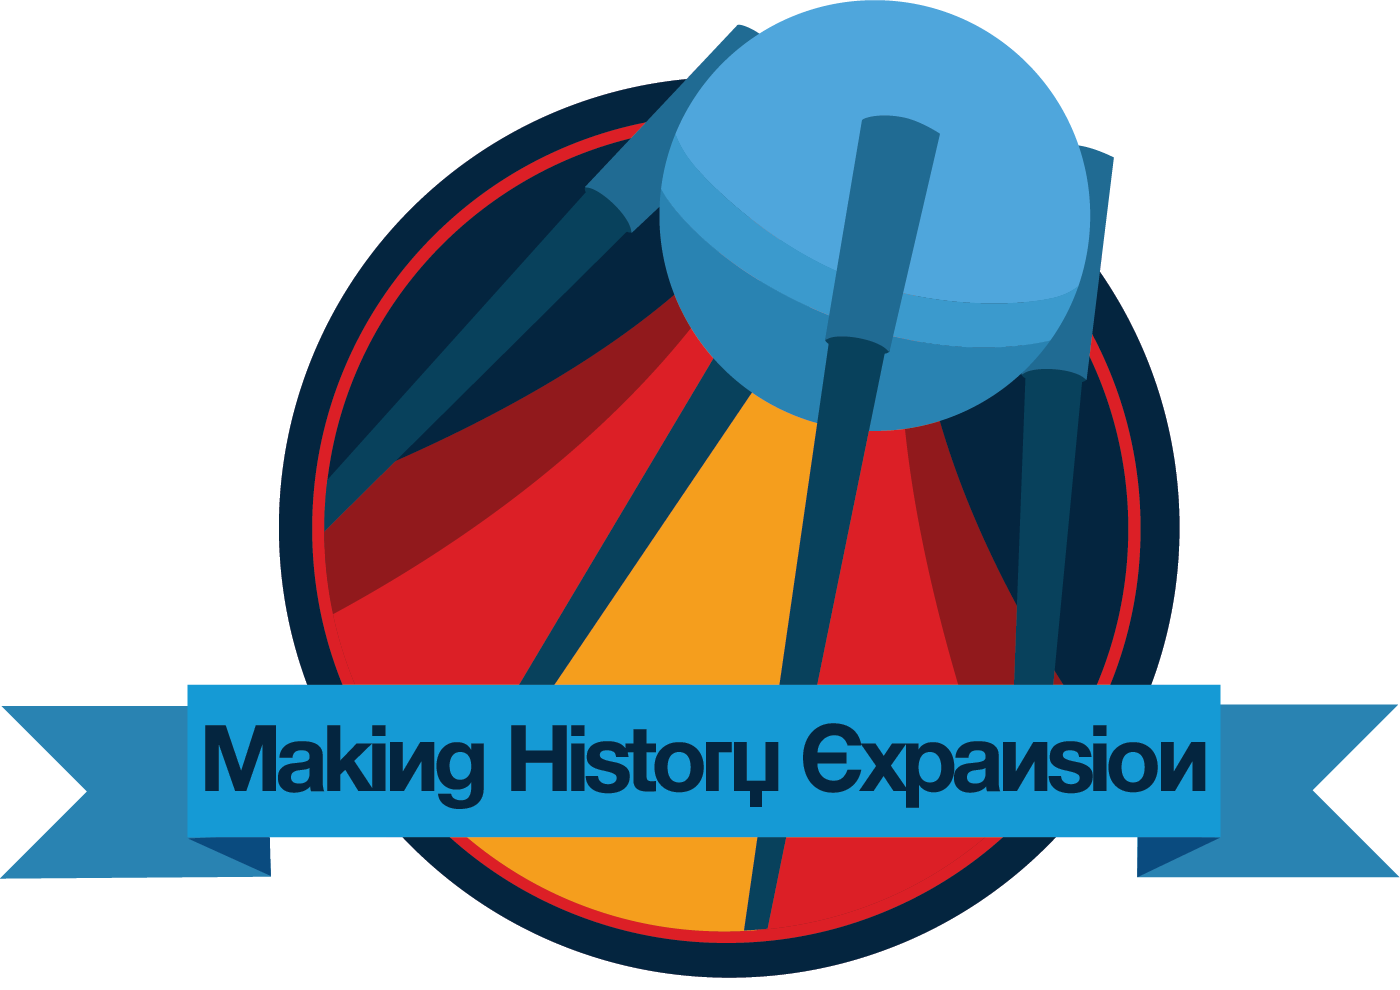 Kerbal space program png. Making history with over